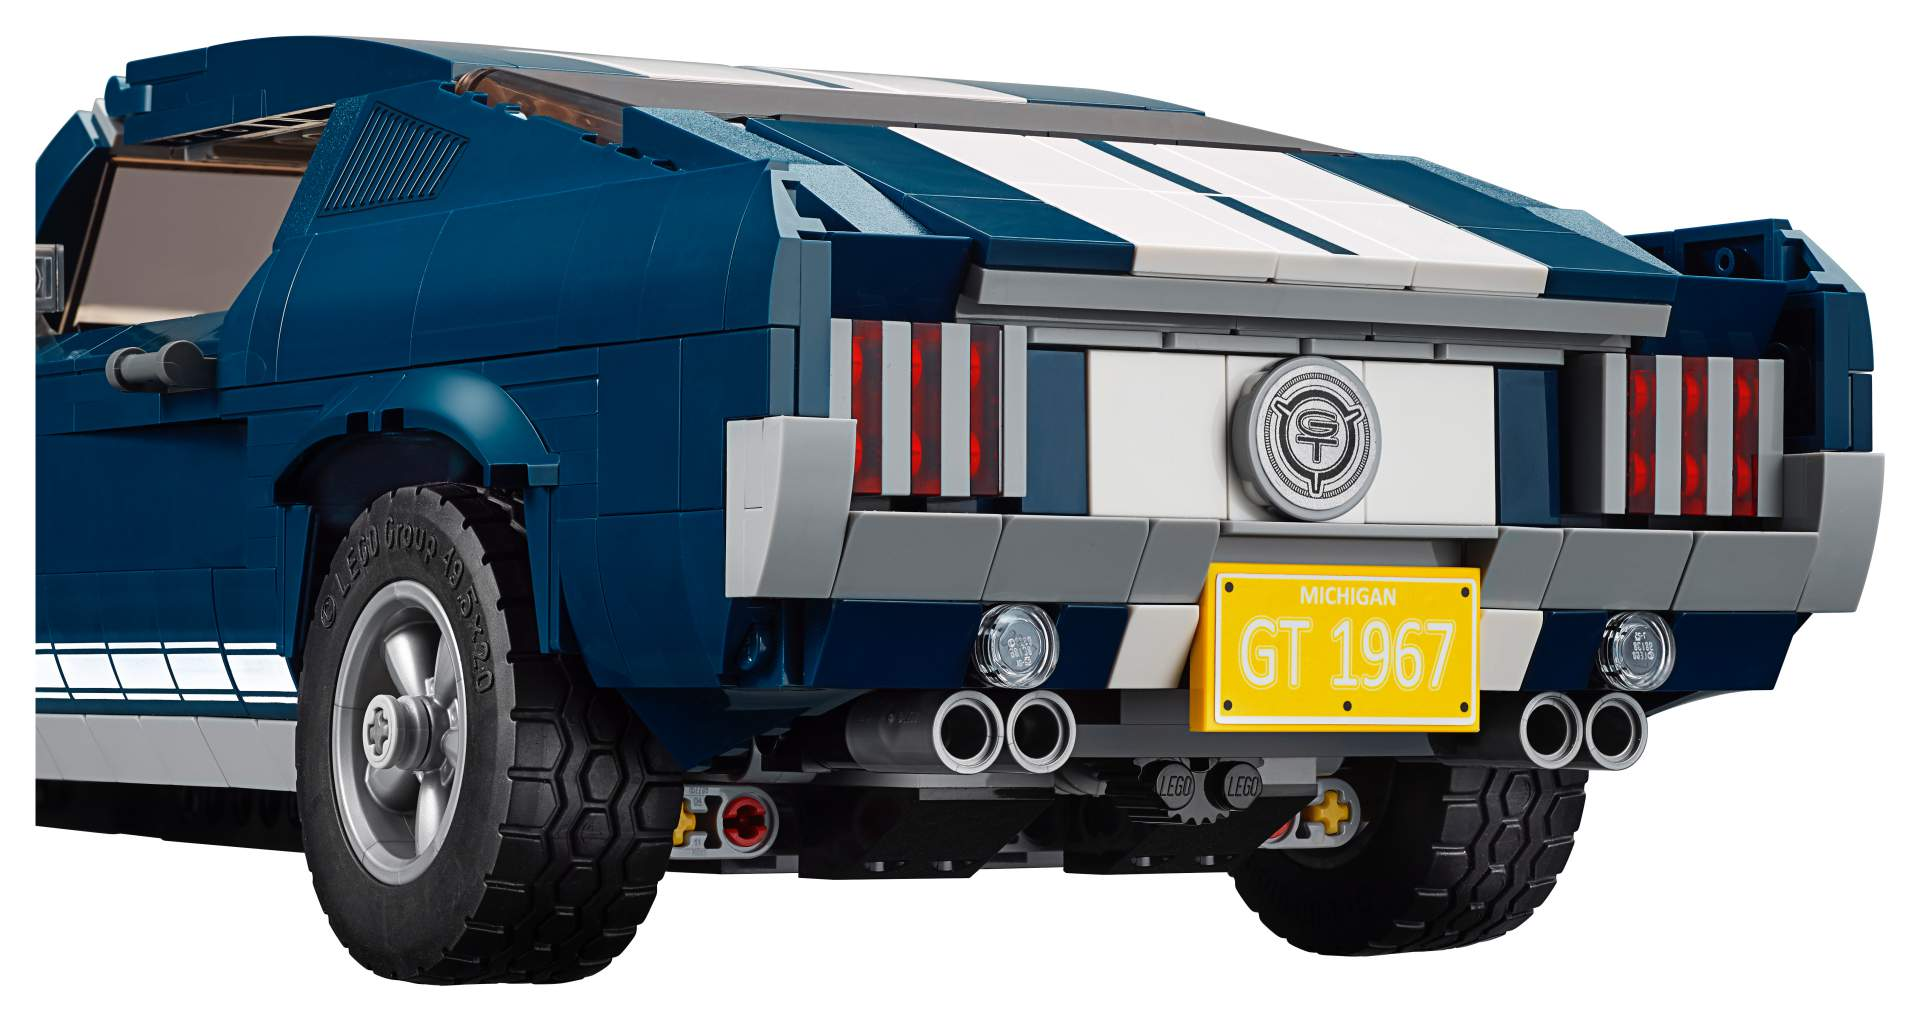 Ford Mustang GT 1967 Lego Creator Set (11)